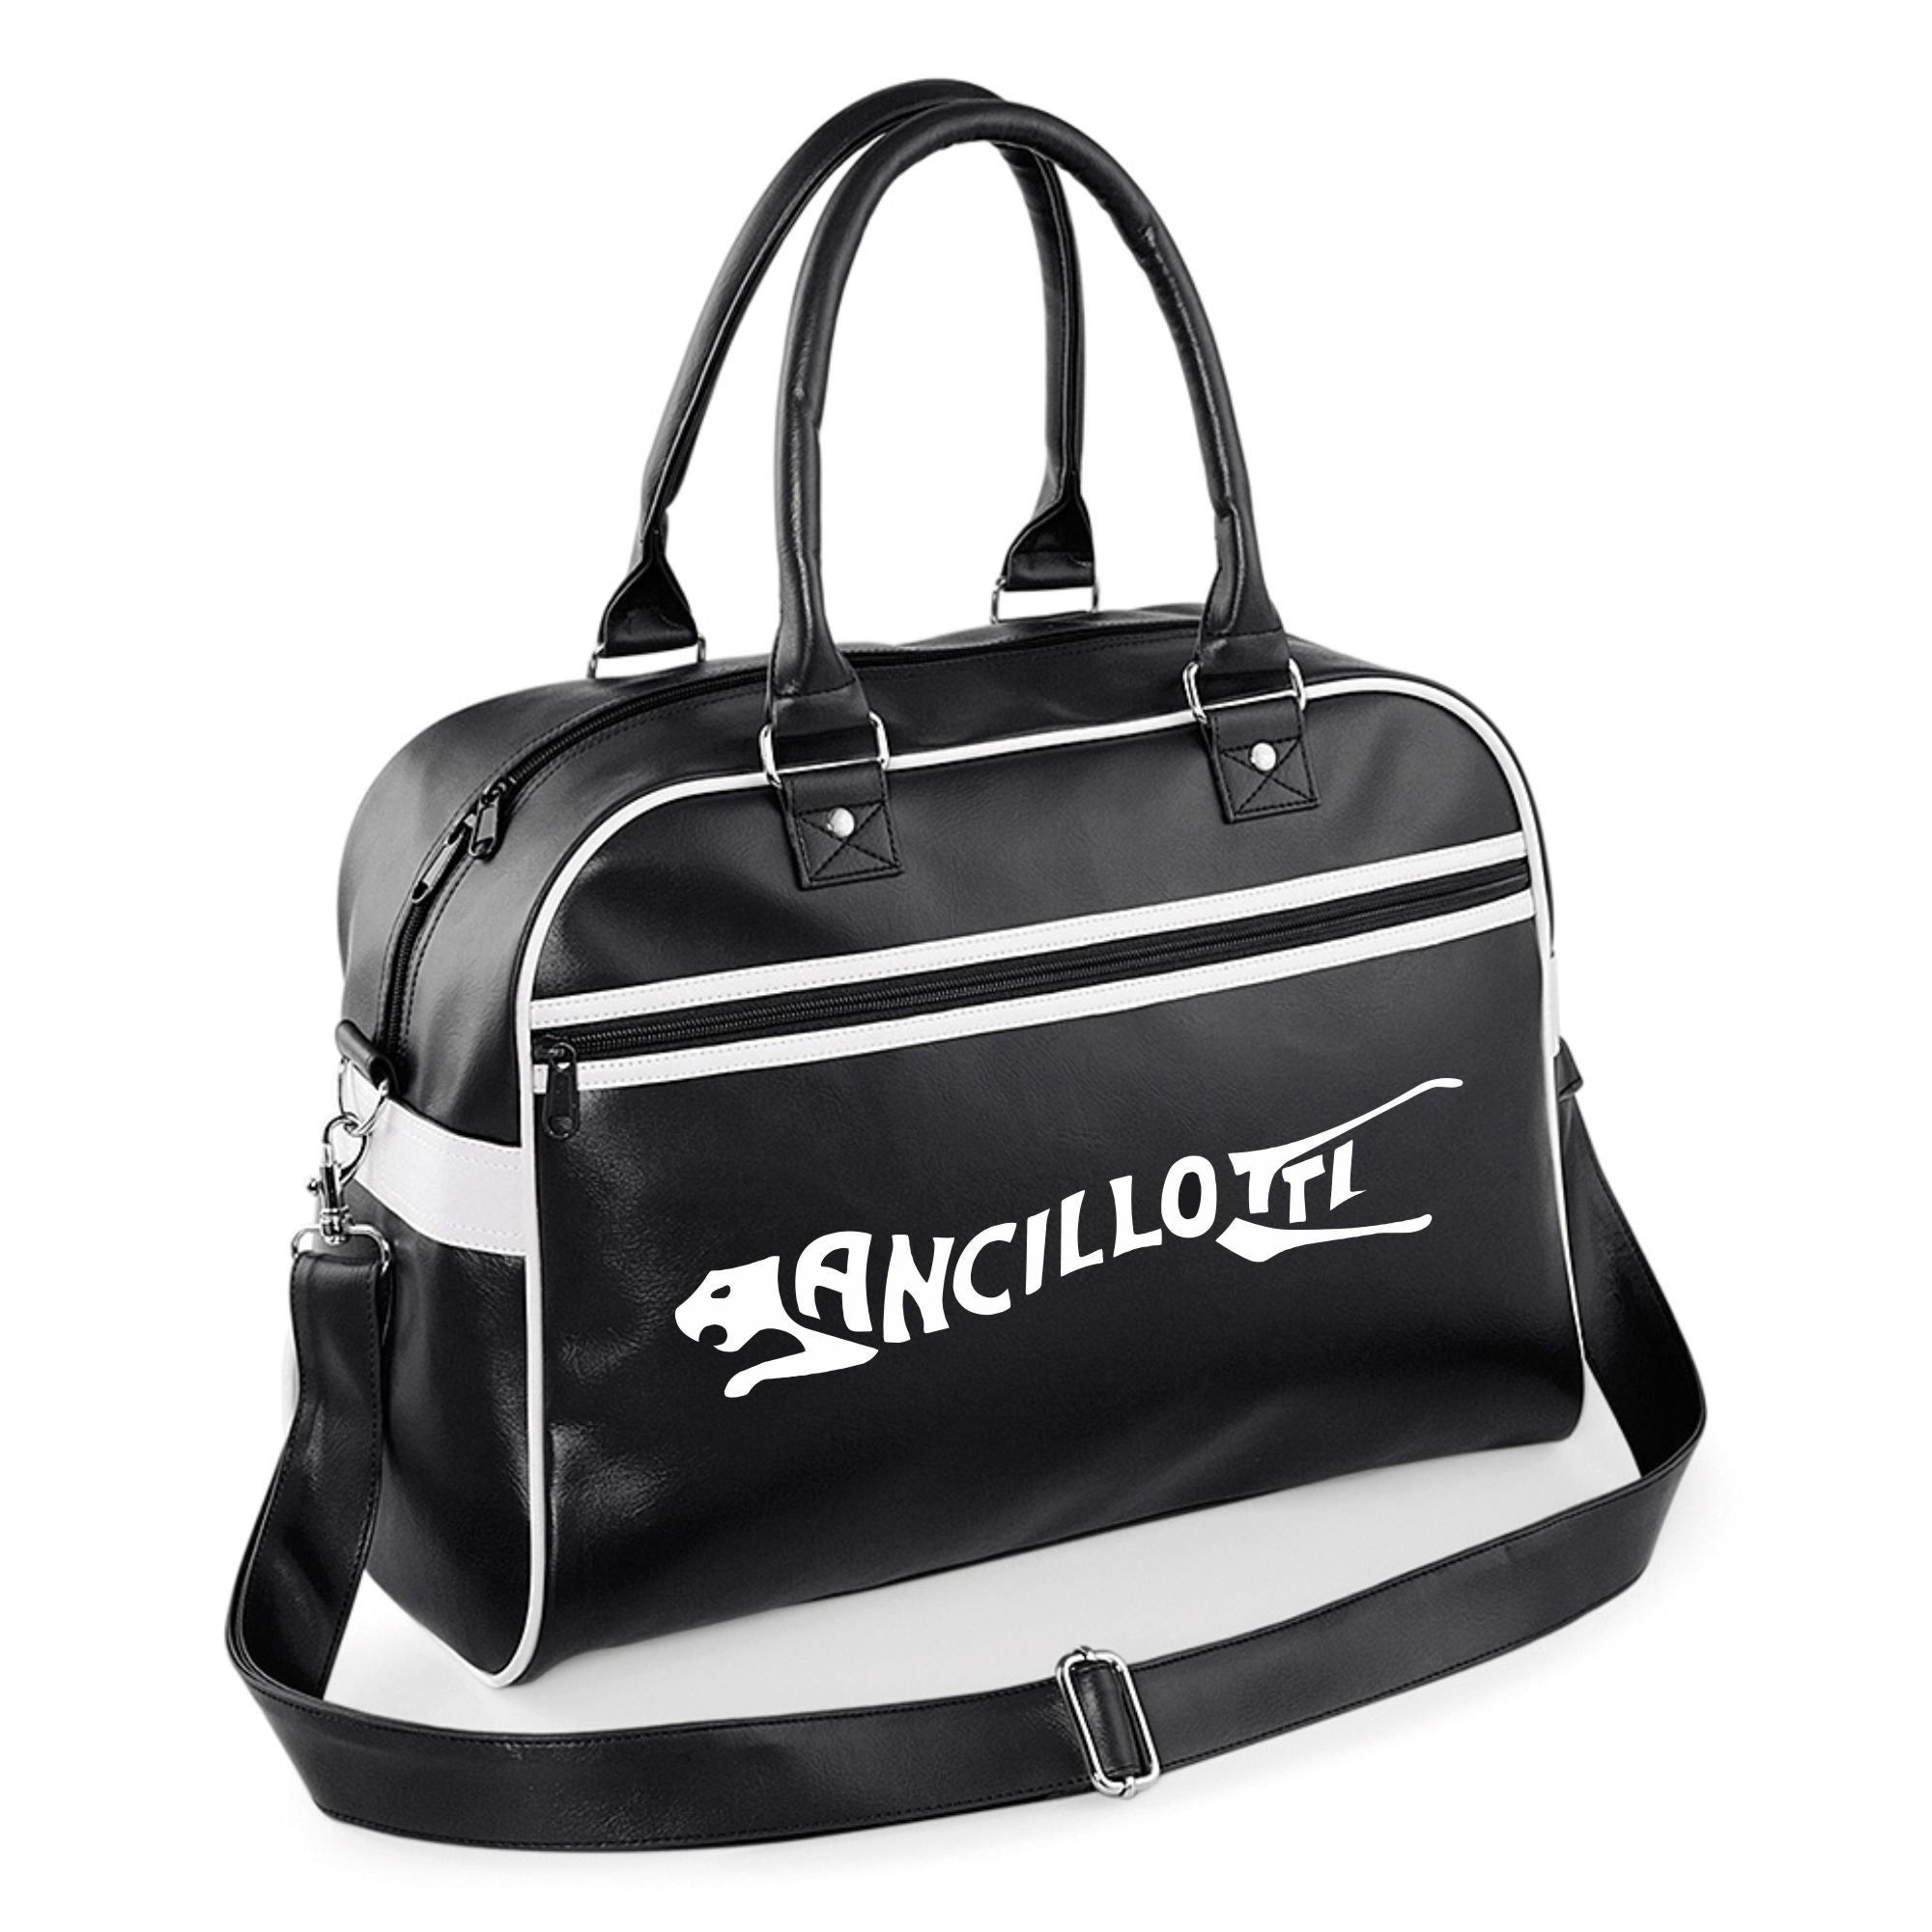 Ancillotti Bowling Bag - Comes In Navy/White & Black/White - FREE UK POSTAGE !!